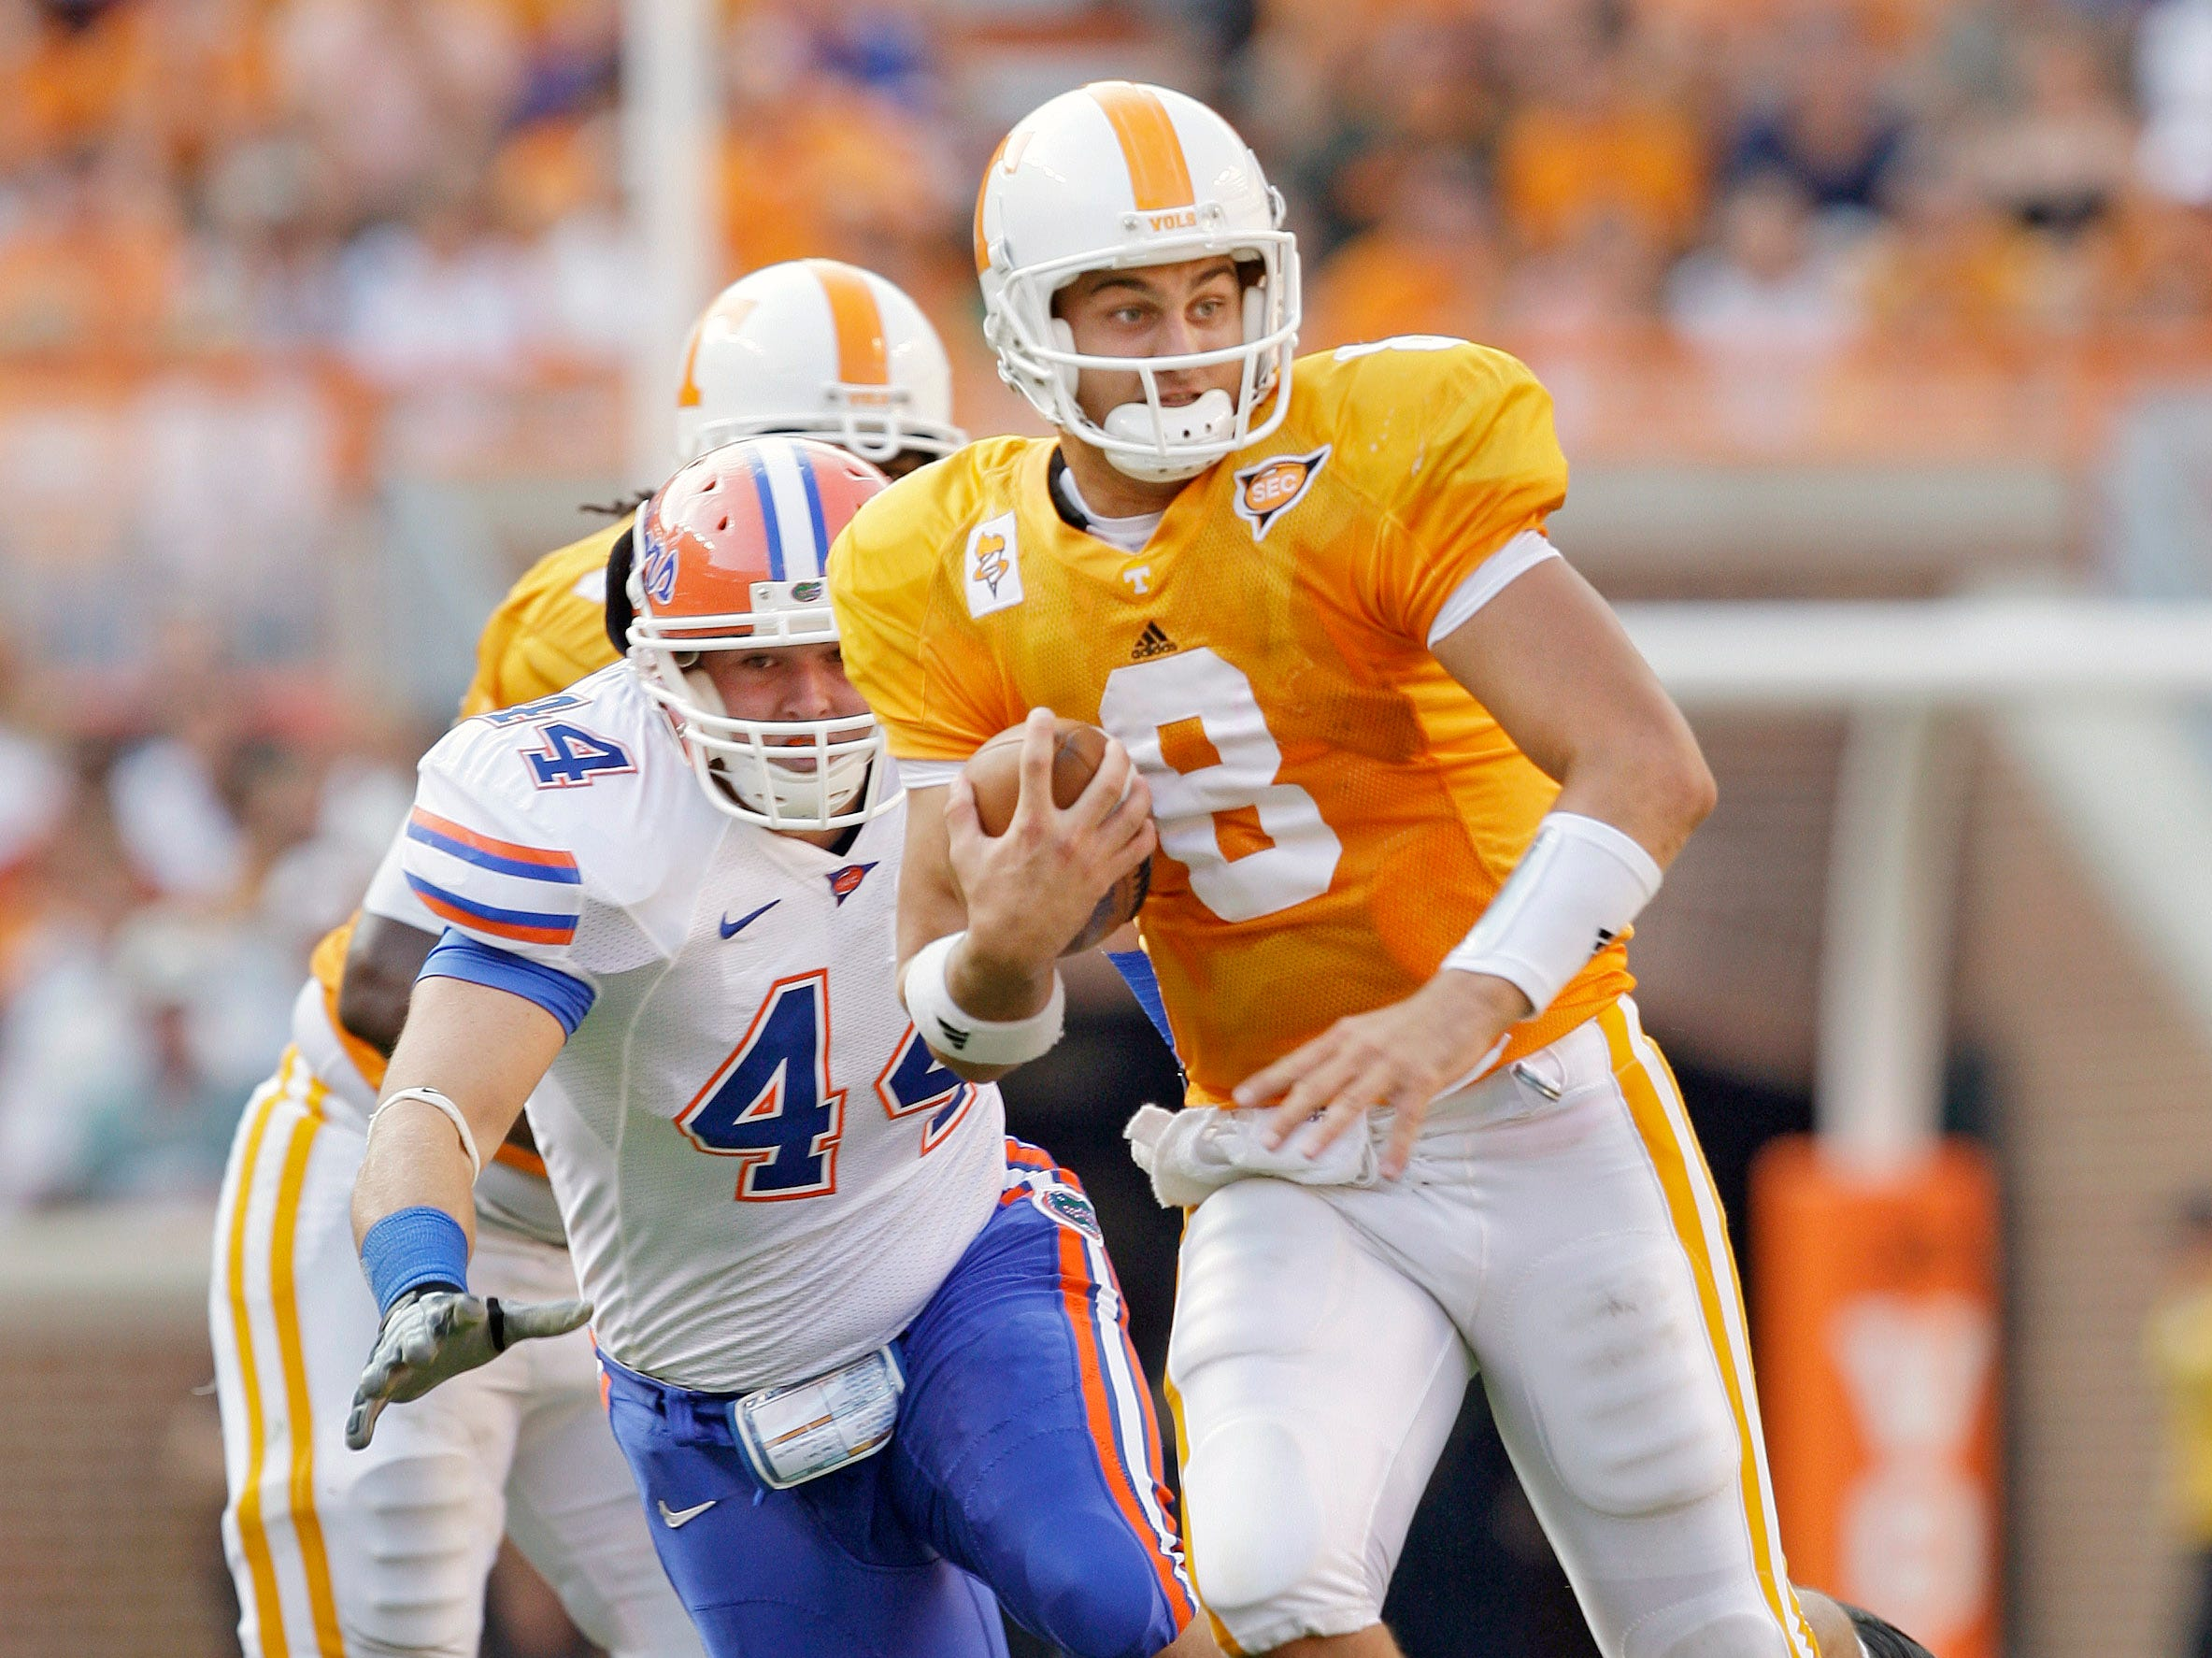 Tennessee quarterback Jonathan Crompton (8) scrambles away from Florida defensive end Duke Lemmens (44) during the third quarter of an NCAA college football game in Knoxville, Tenn., Saturday, Sept. 20, 2008. Florida won 30-6.